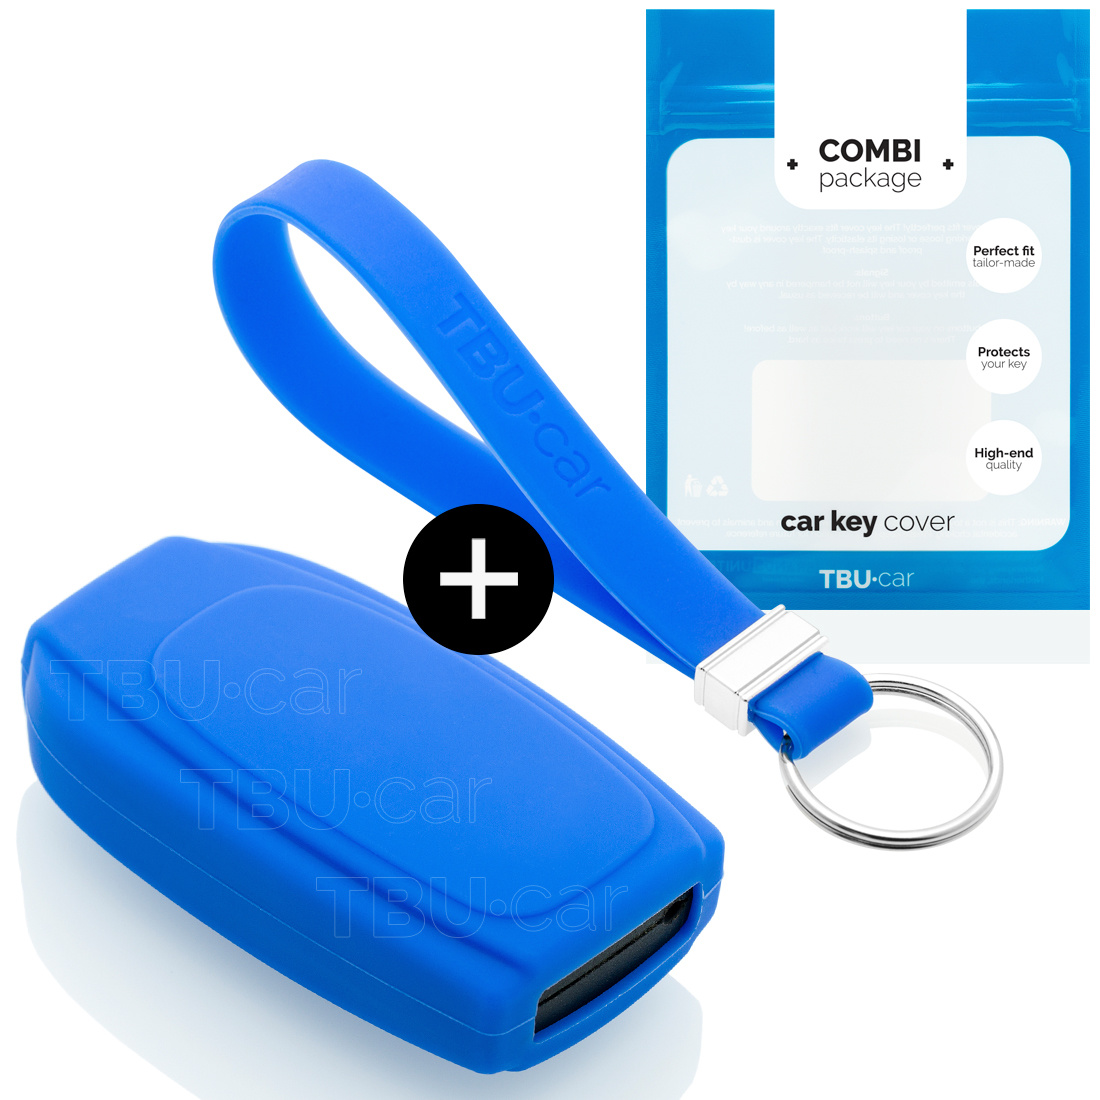 Volvo Car key cover - Silicone Protective Remote Key Shell - FOB Case Cover - Blue